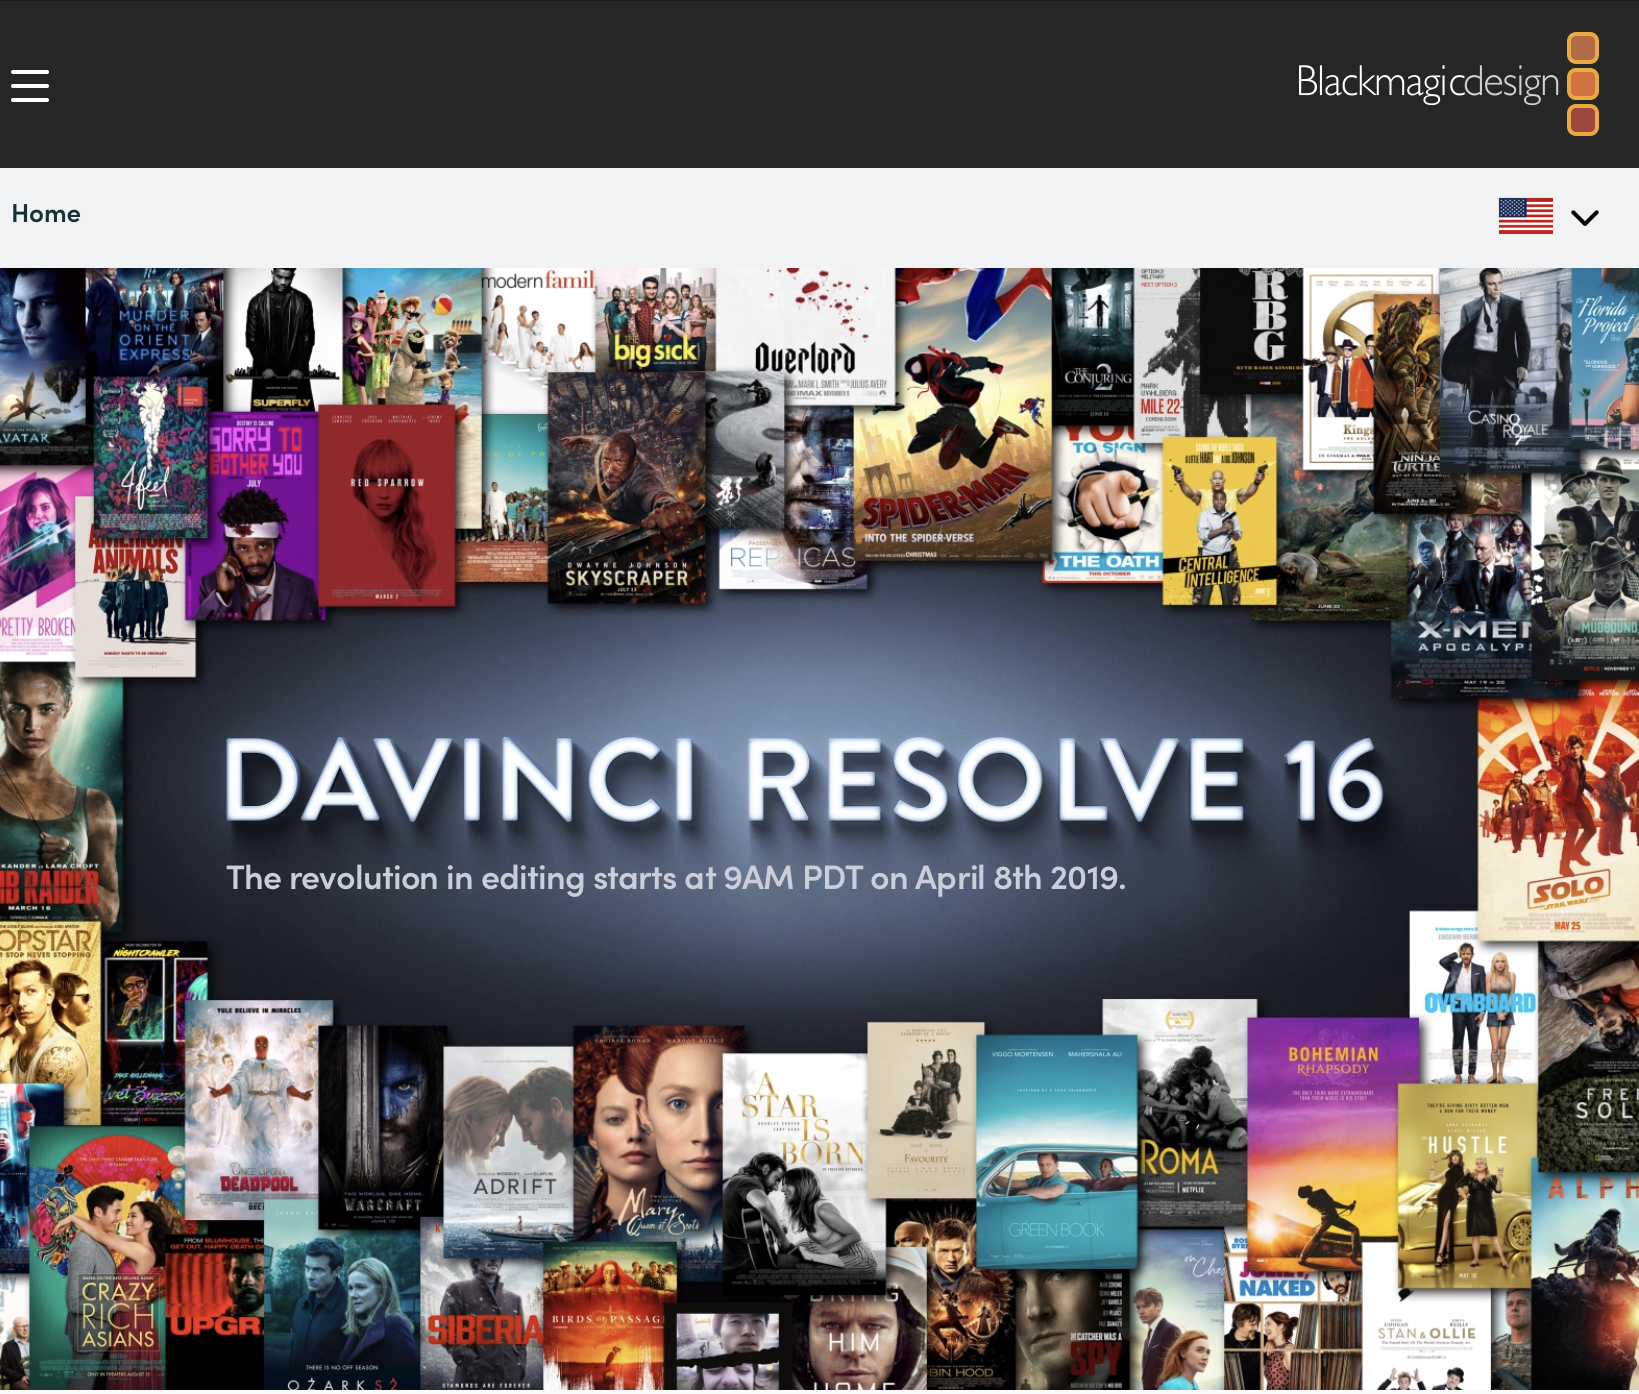 Stay tuned for DaVinci Resolve 16 7